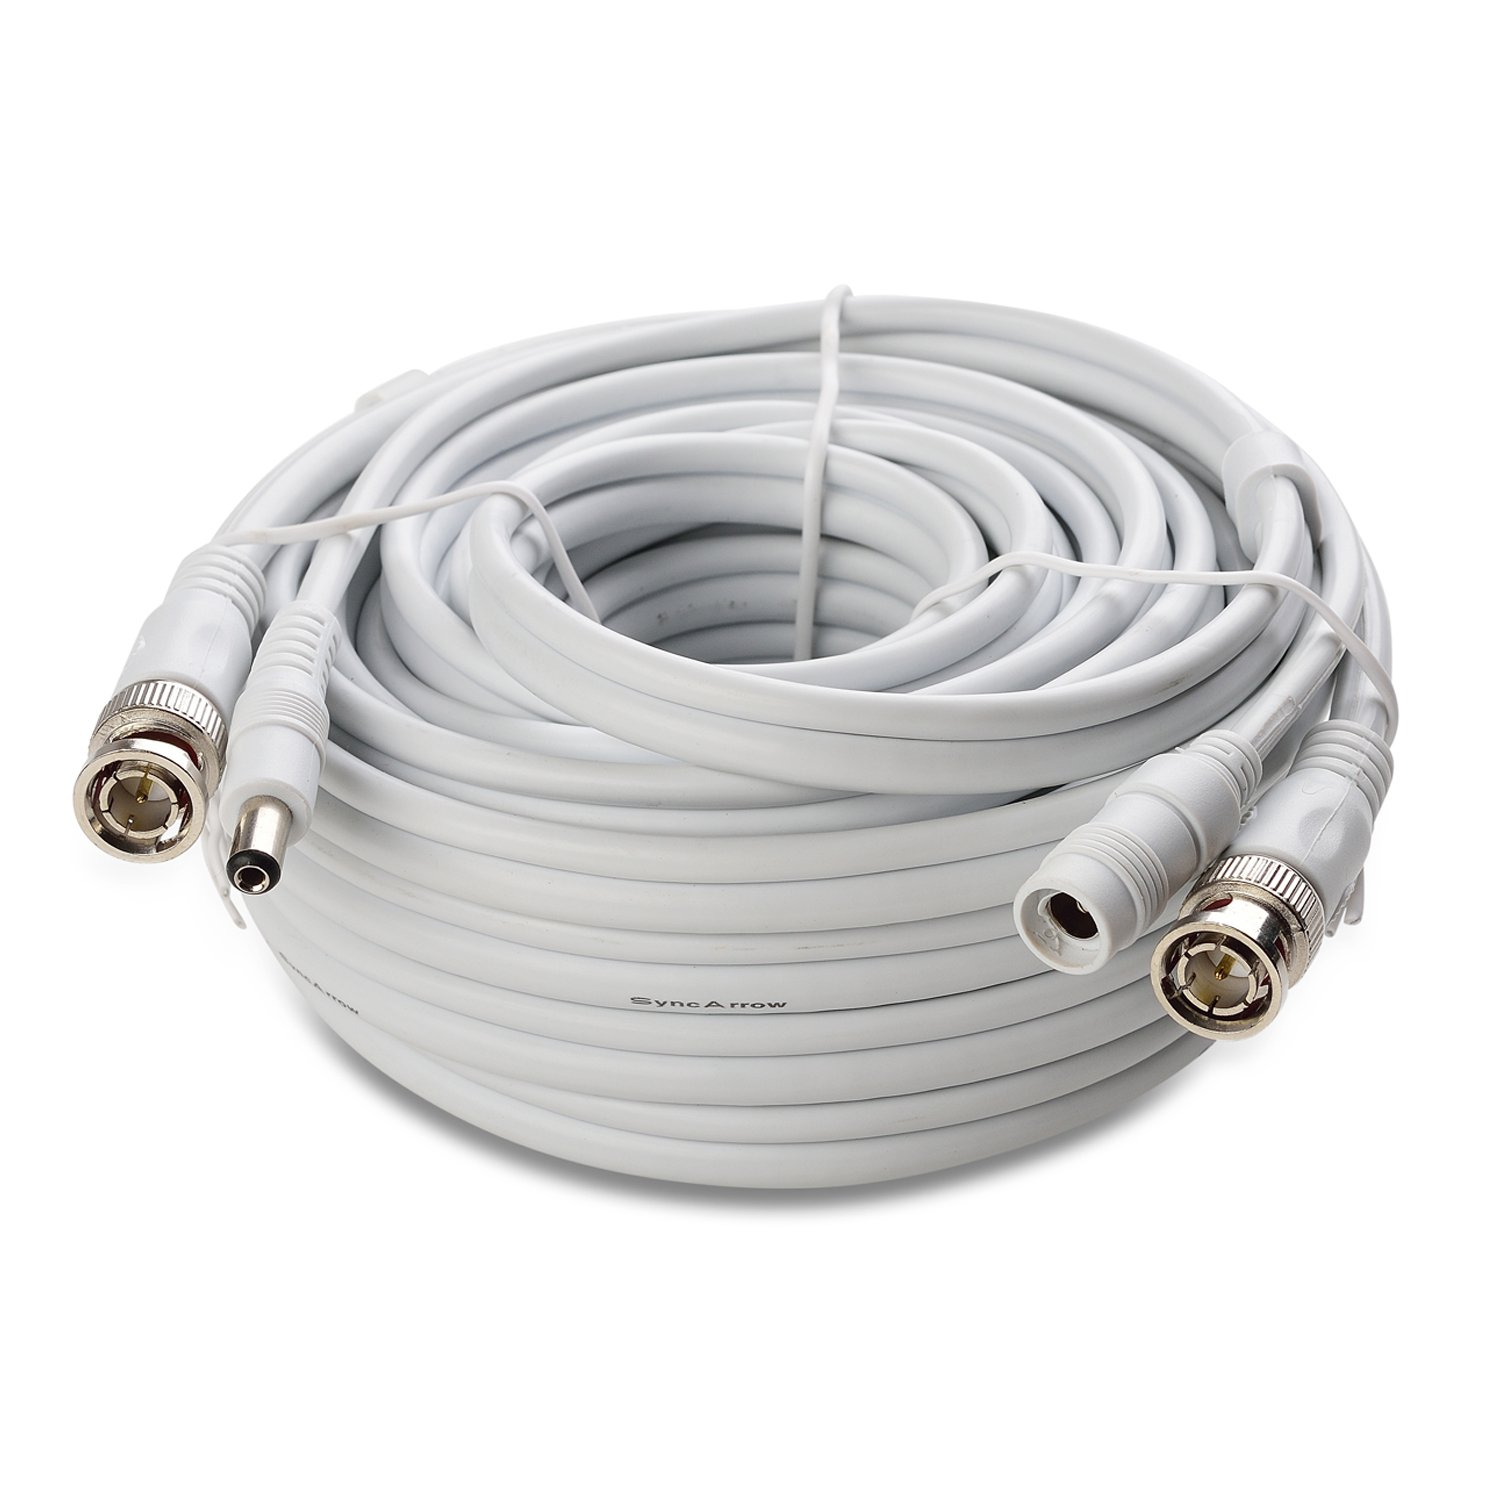 SyncArrow Premium PRO-Grade 1080P HD Premade 2-In-1 Multi-Purpose Fire-Rated Double Shielded BNC Video Power Extension Cord CCTV Combo Coaxial Cable with BNC RCA (PRO-30M2W, 100 feet, White)